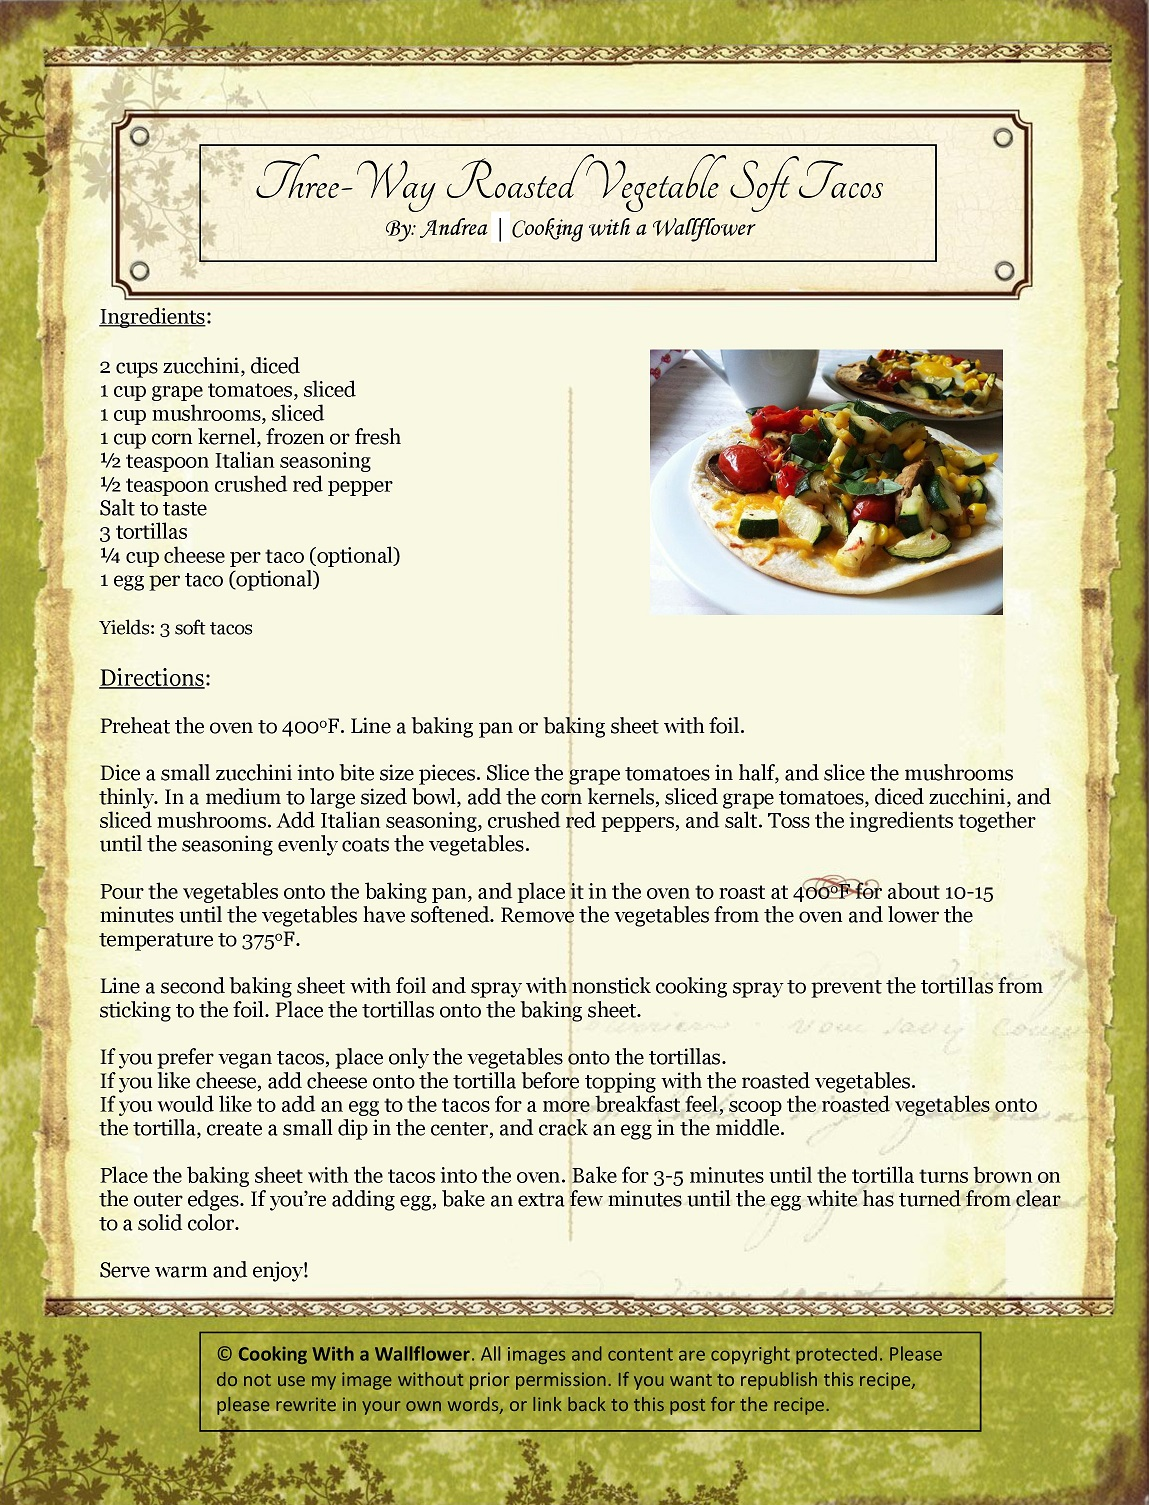 Three-Way Roasted Vegetable Soft Tacos Recipe Card